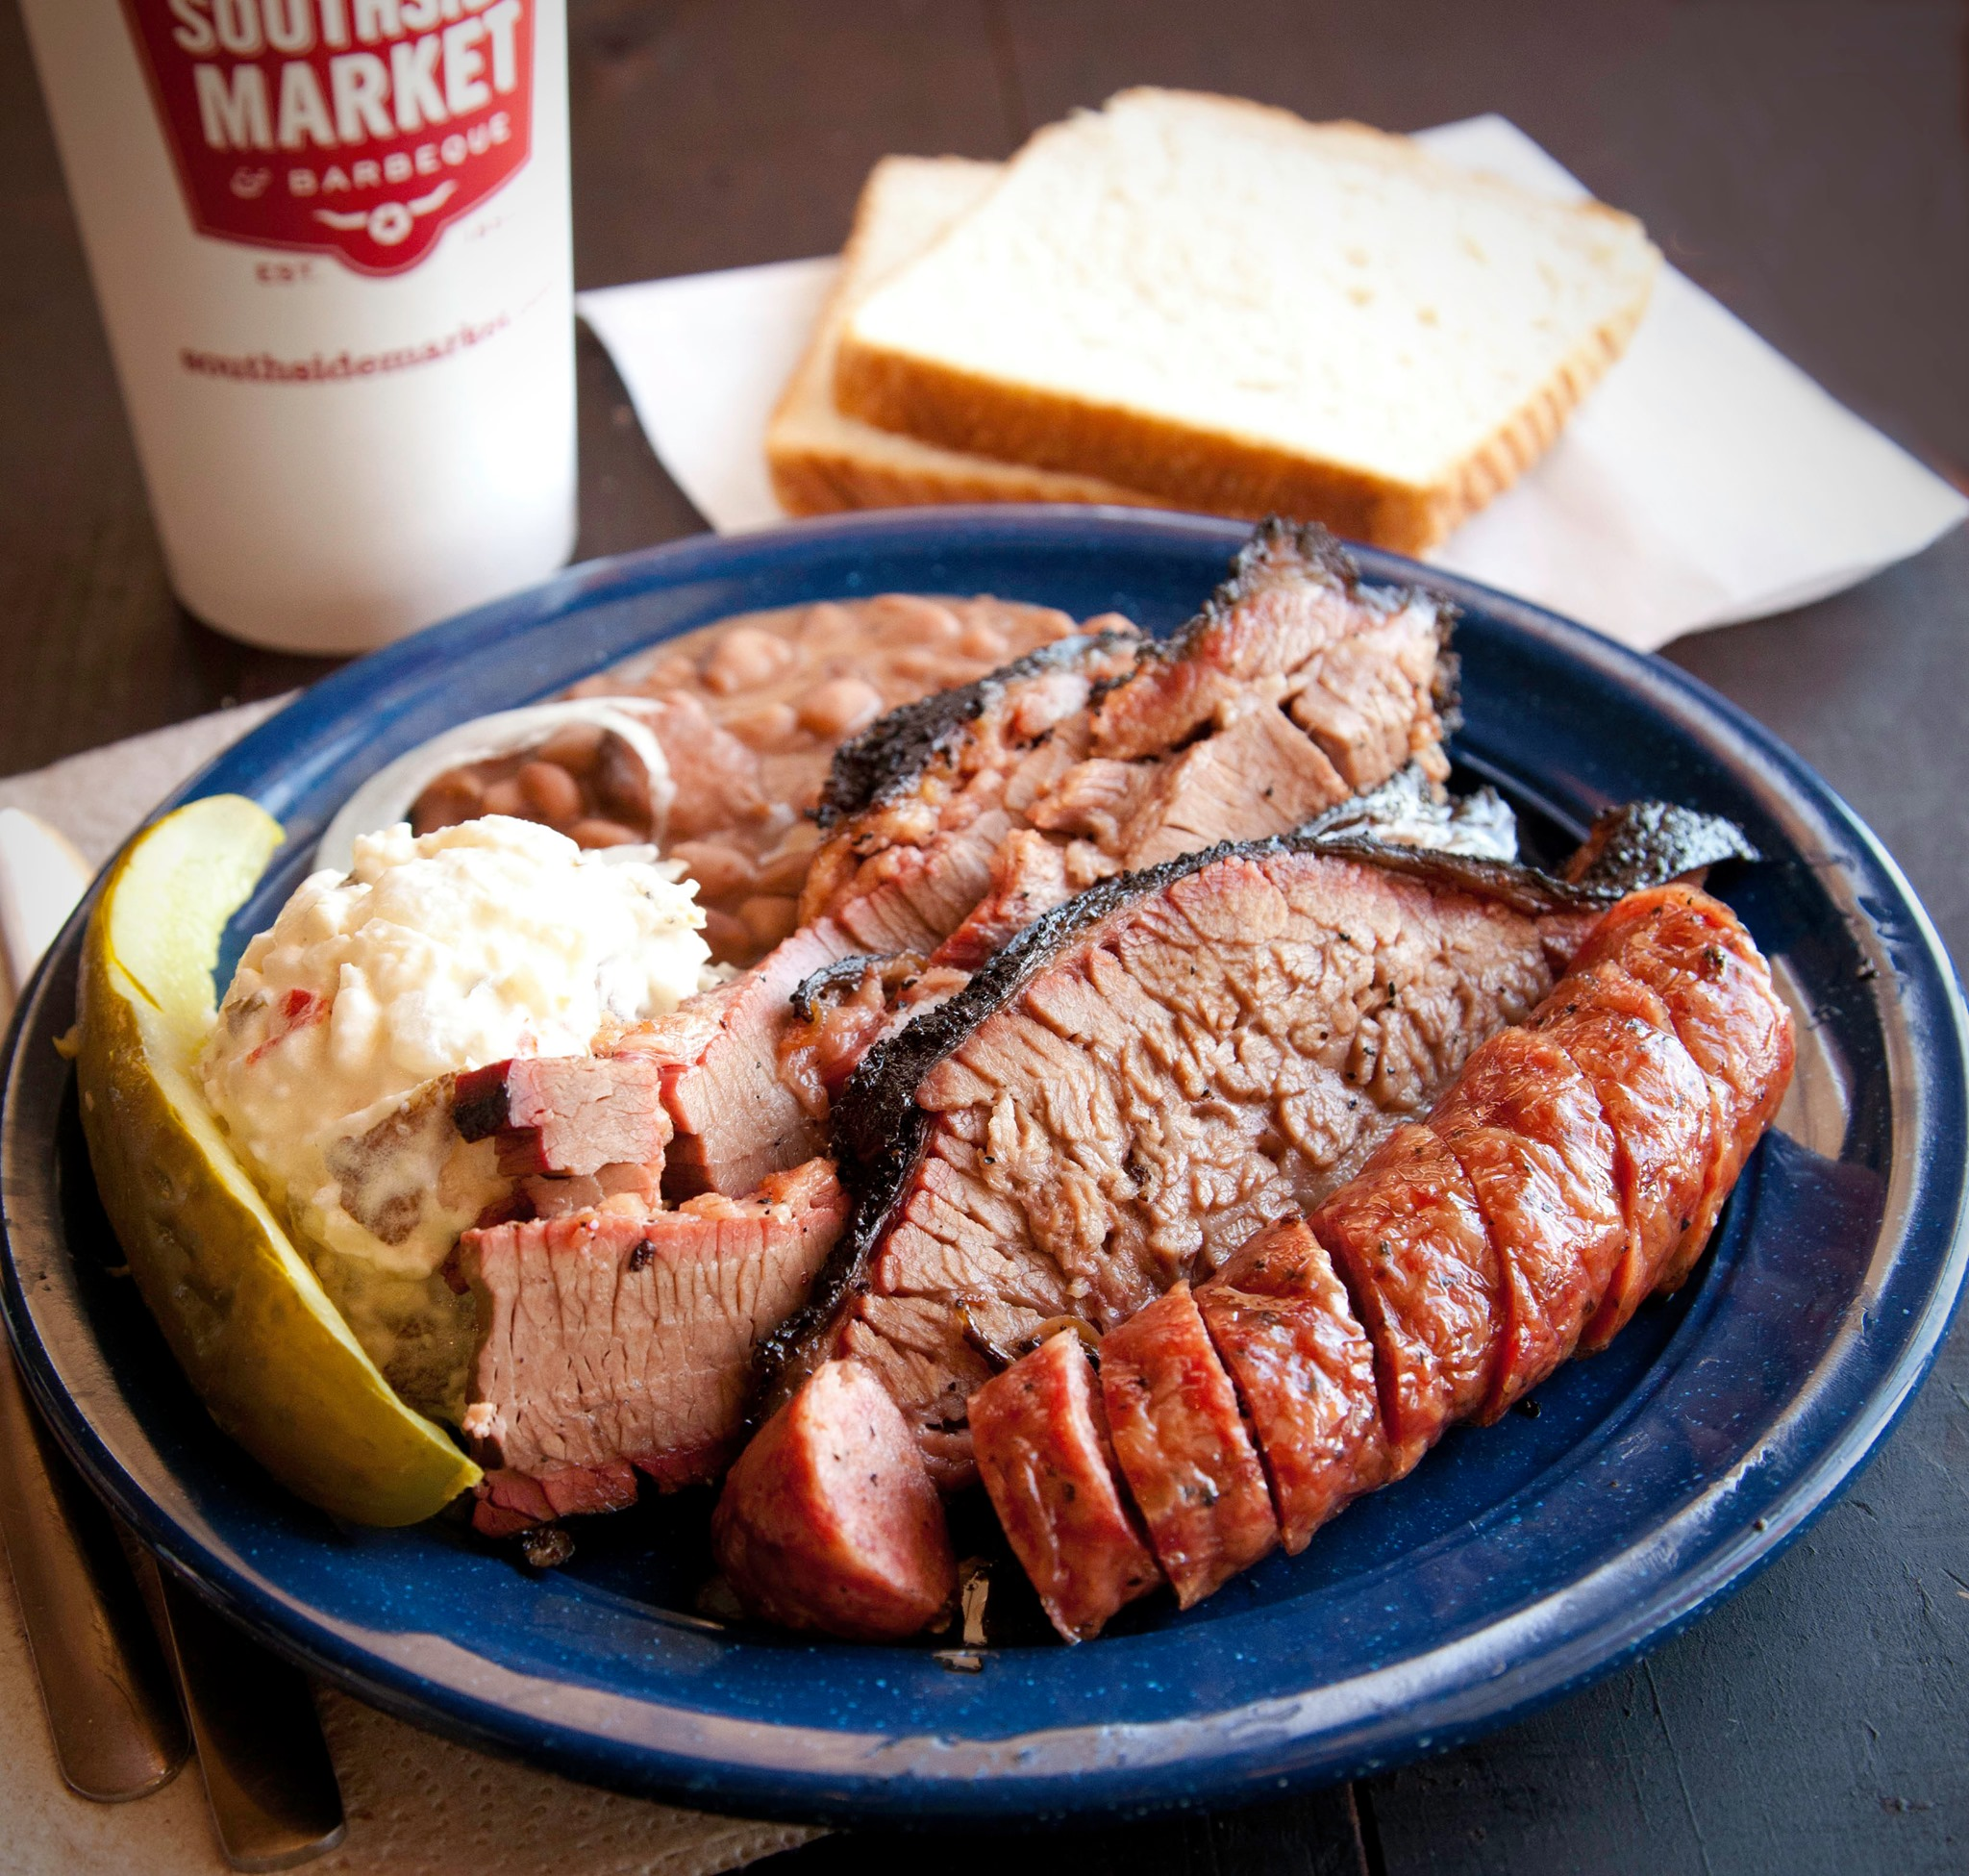 A barbecue plate from Southside Market